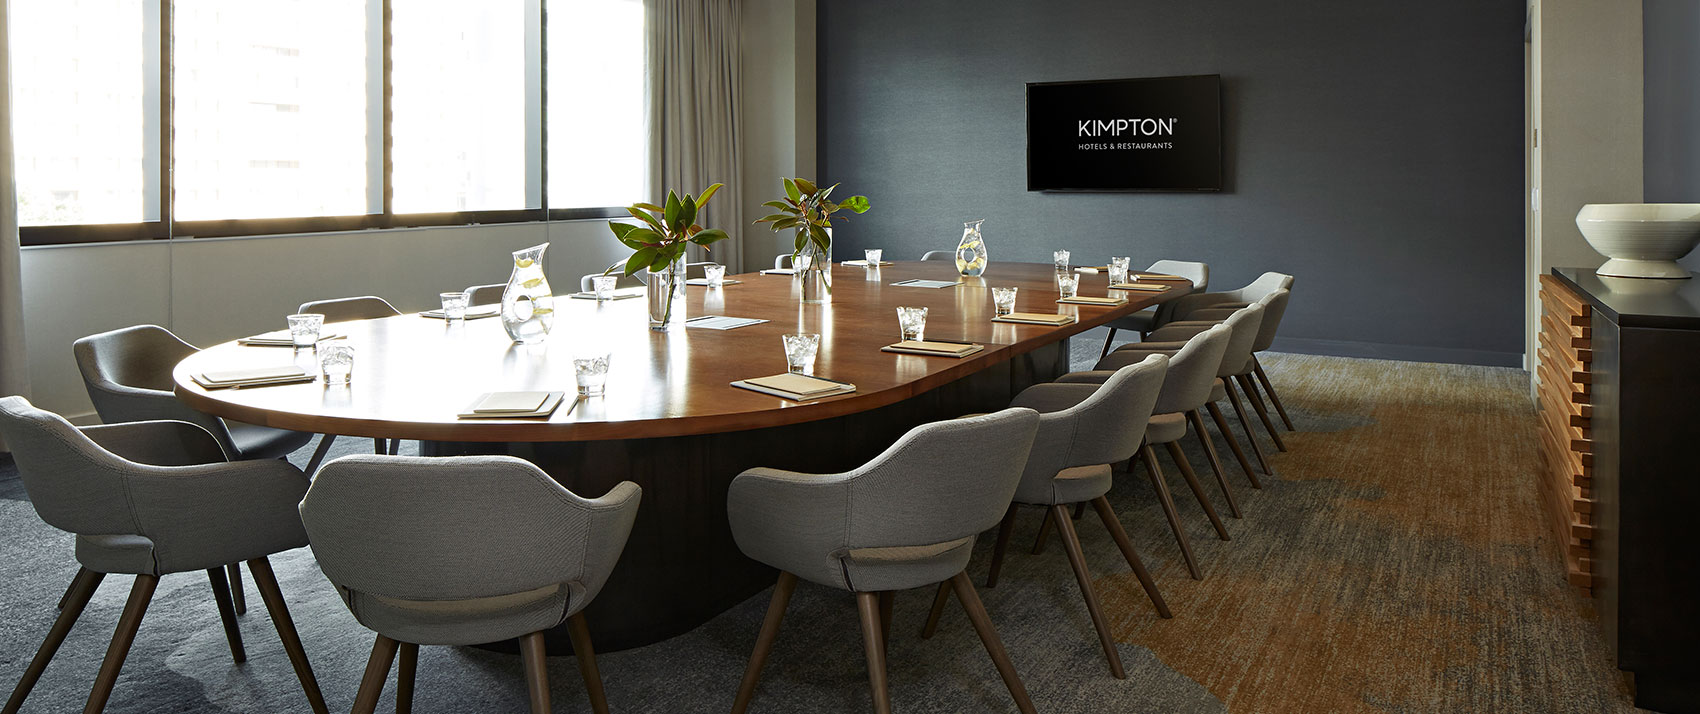 kimpton sawyer custom events